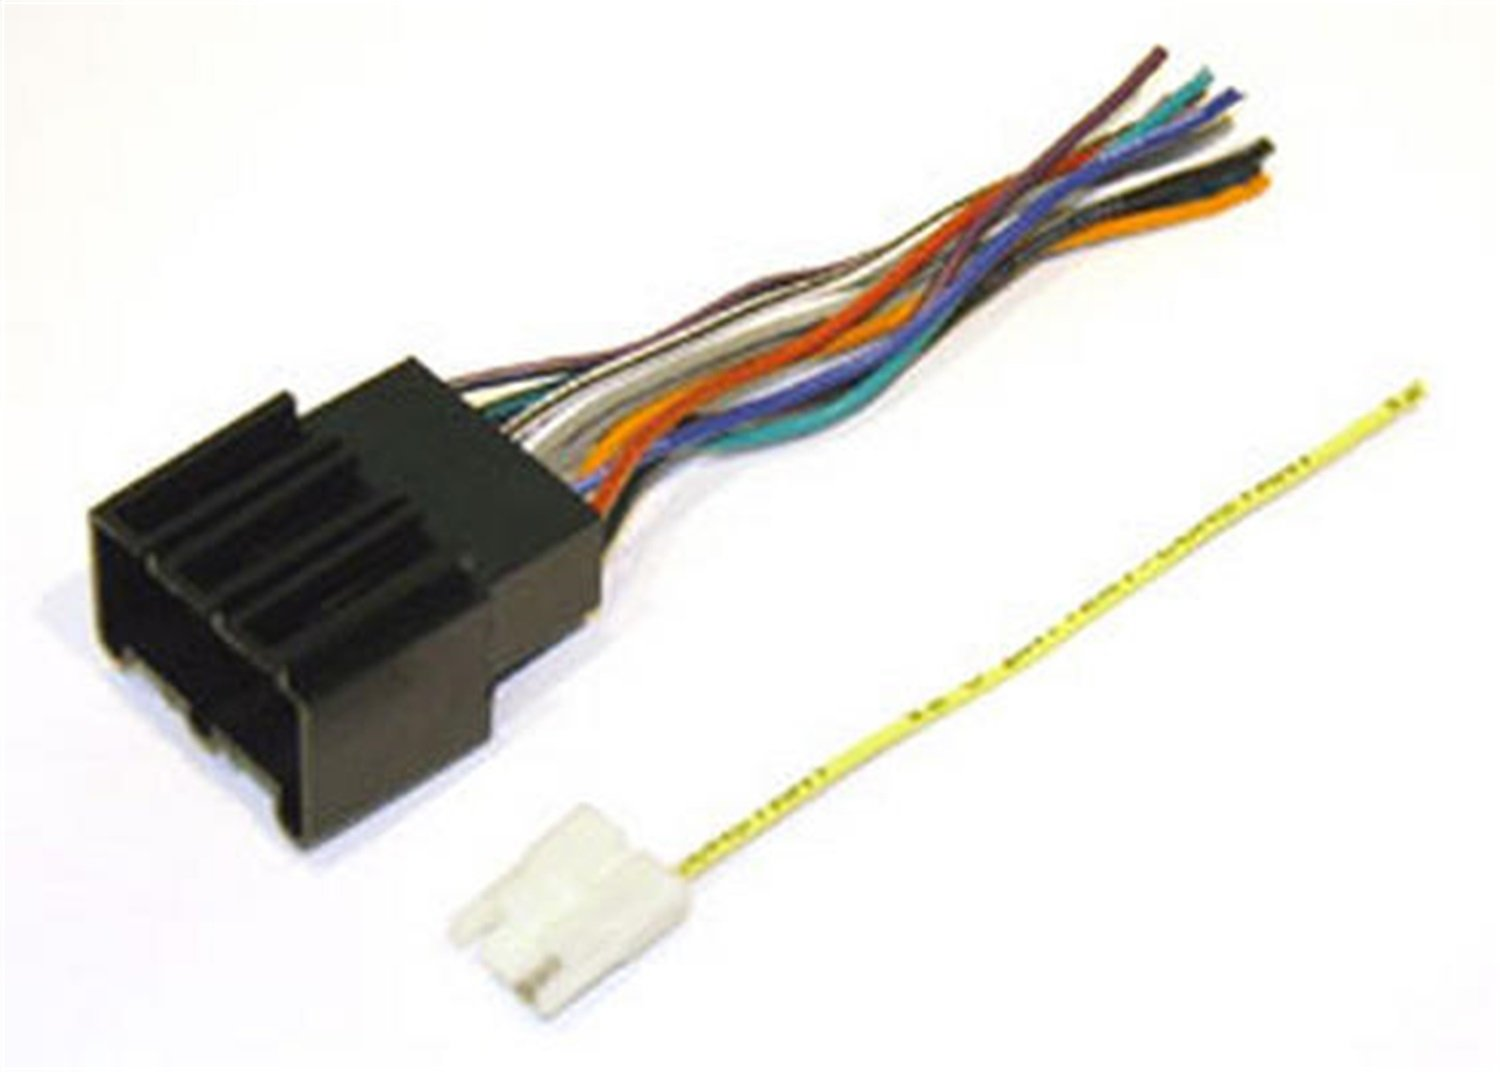 [DIAGRAM_38IS]  204D8A8 87 Camaro Scosche Wiring Harness Color Code | Wiring Library | Scosche Wiring Harness Fdk106 |  | Wiring Library